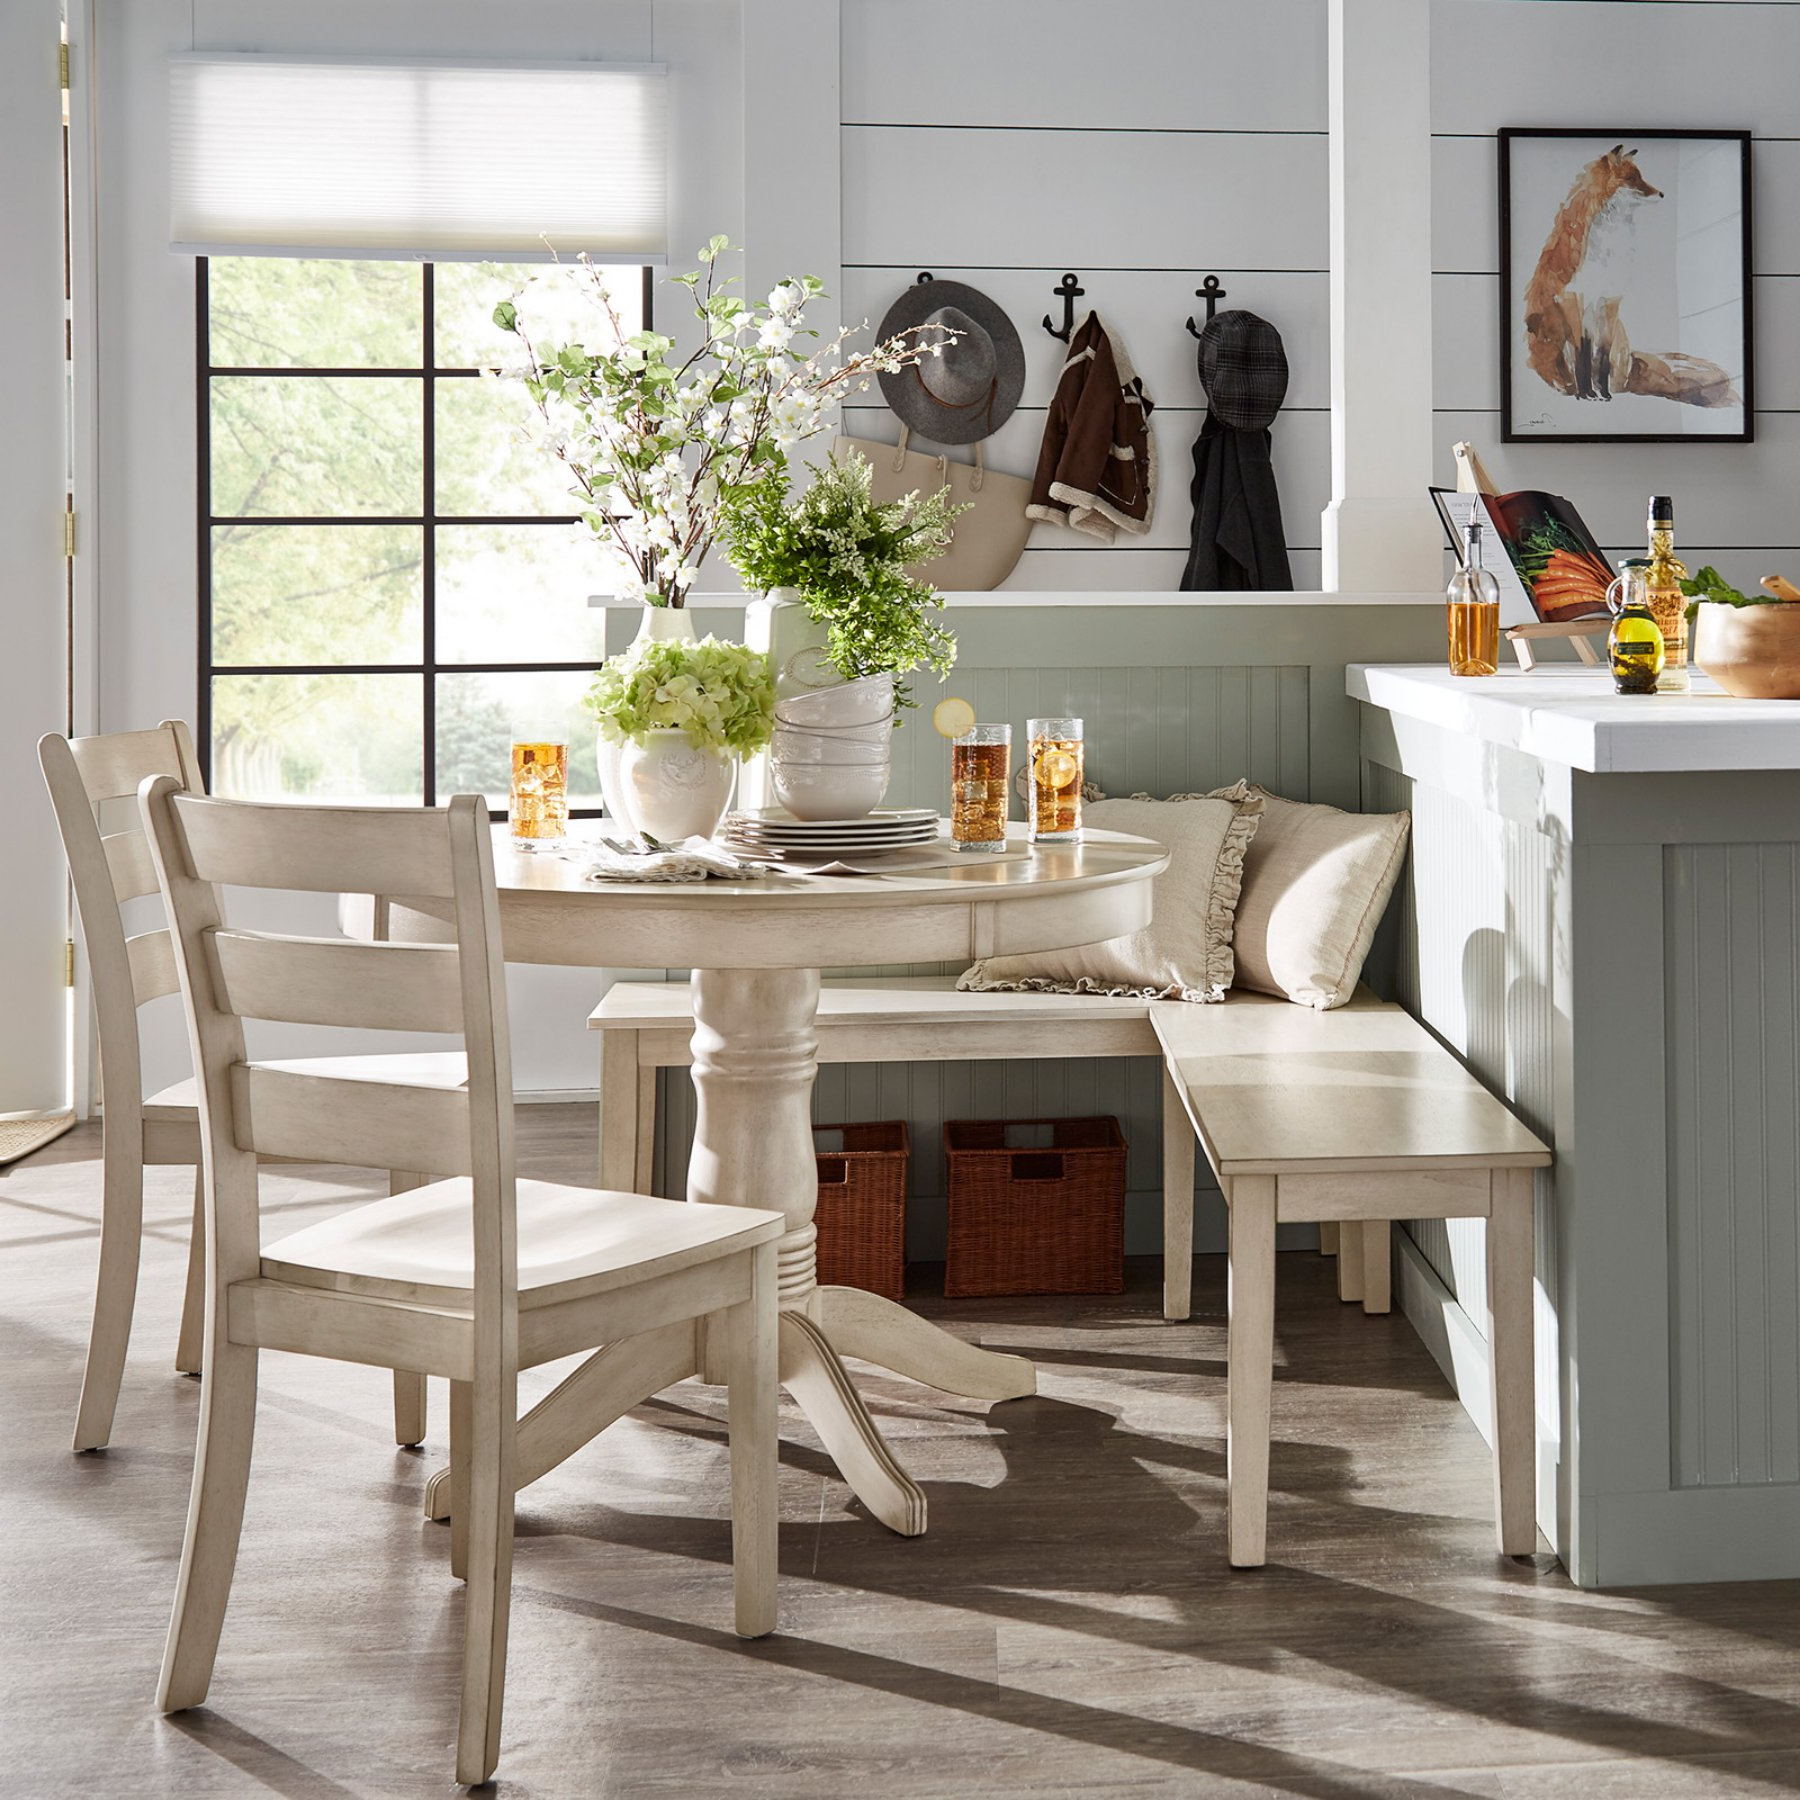 Weston Home Lexington 5 Piece Breakfast Nook Round Dining Set Within Newest 5 Piece Breakfast Nook Dining Sets (View 19 of 20)